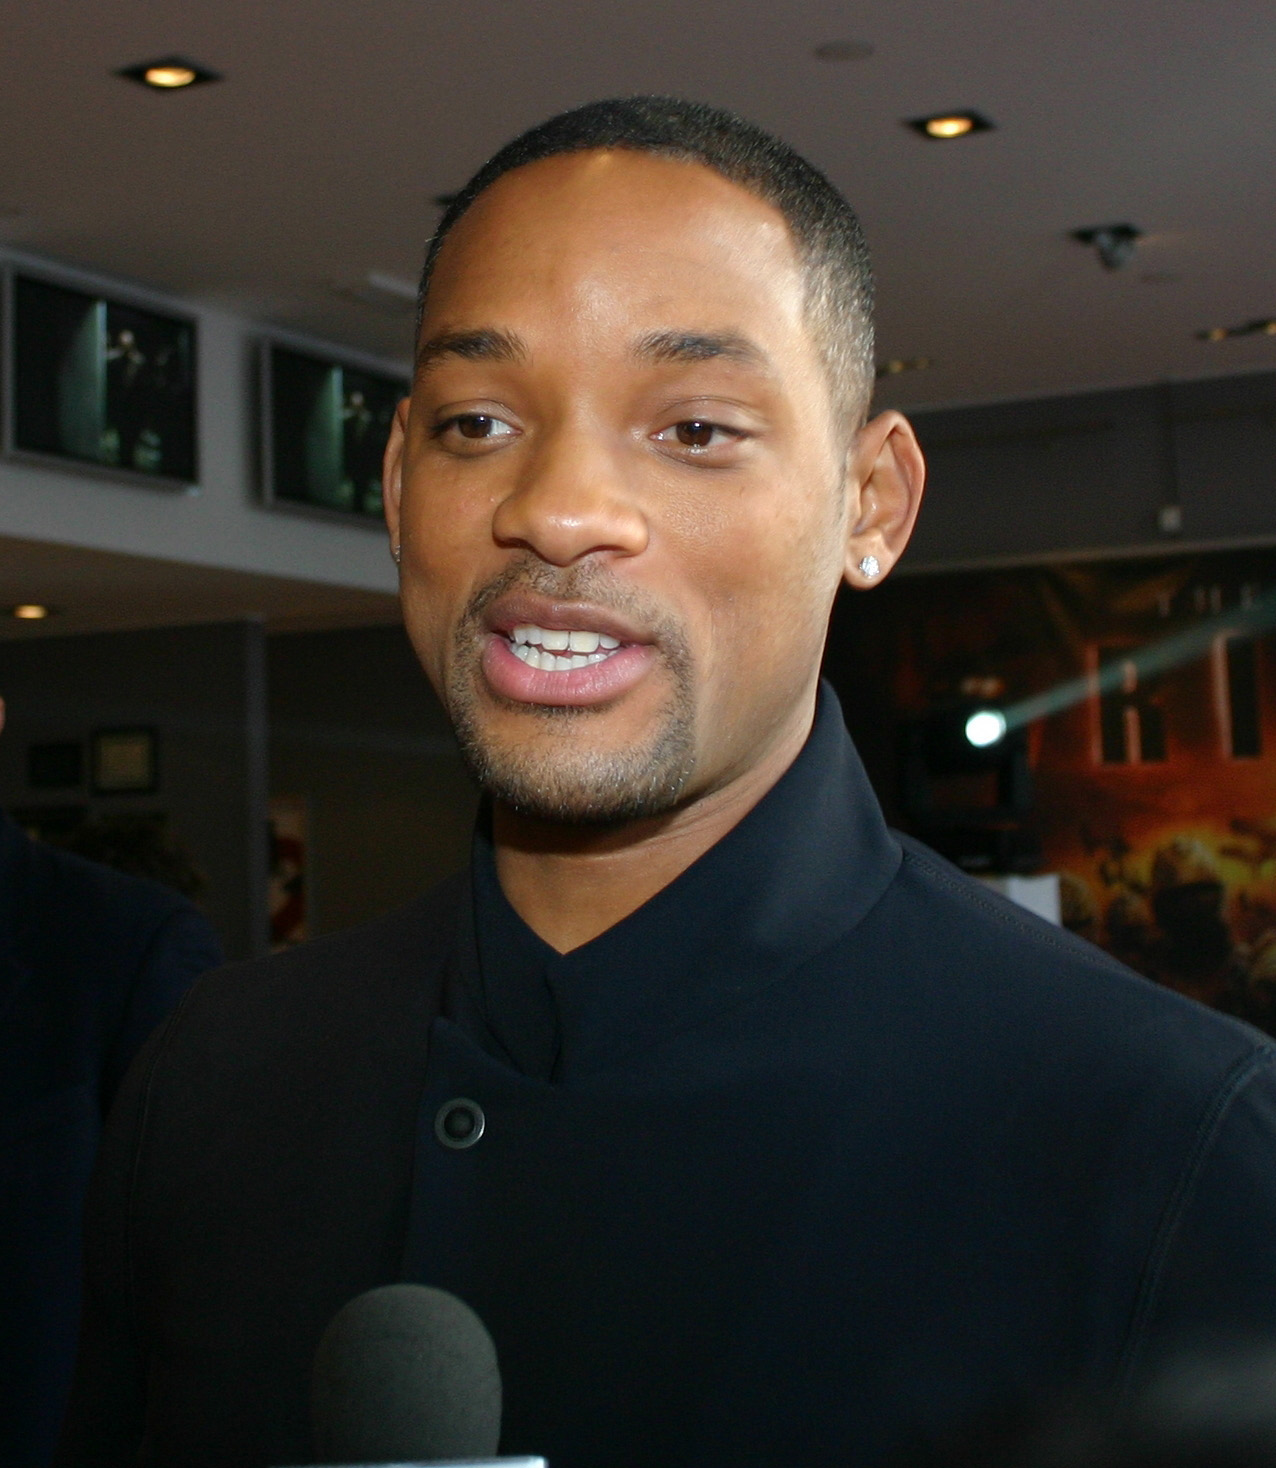 Will smith date of birth